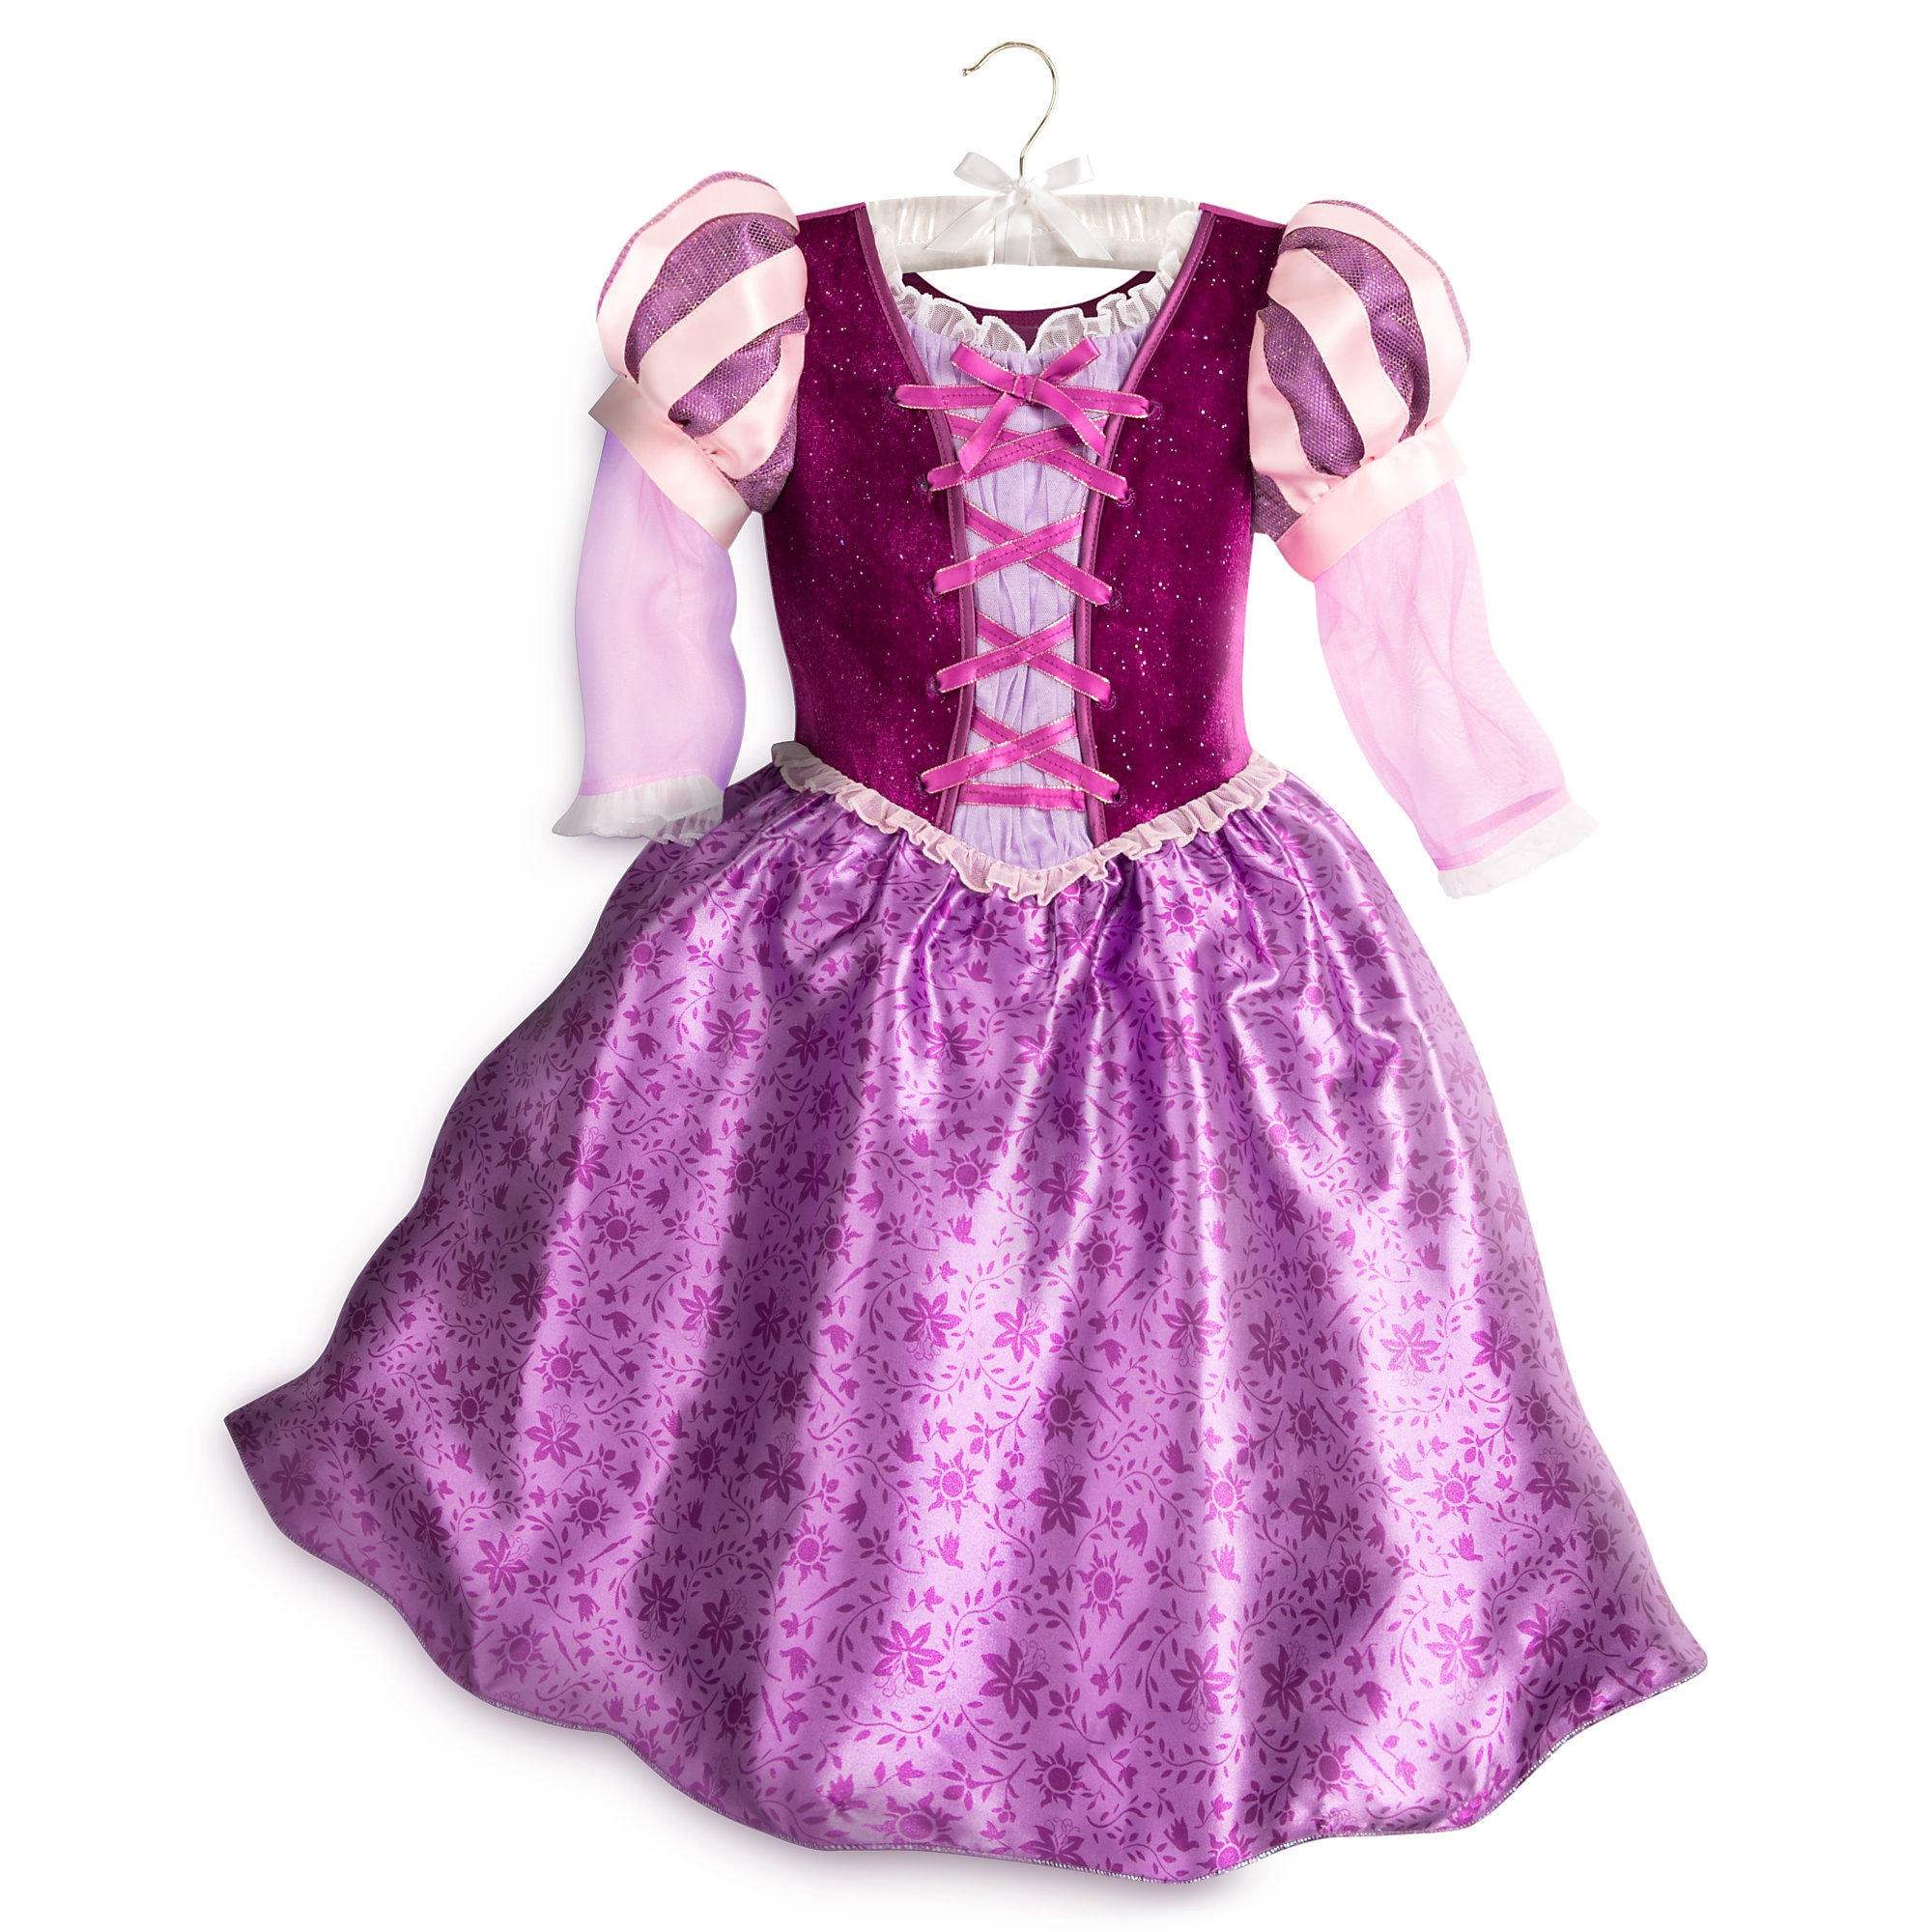 Product Image of Rapunzel Costume for Kids - Tangled The Series # 1  sc 1 st  shopDisney & Rapunzel Costume for Kids - Tangled: The Series | shopDisney